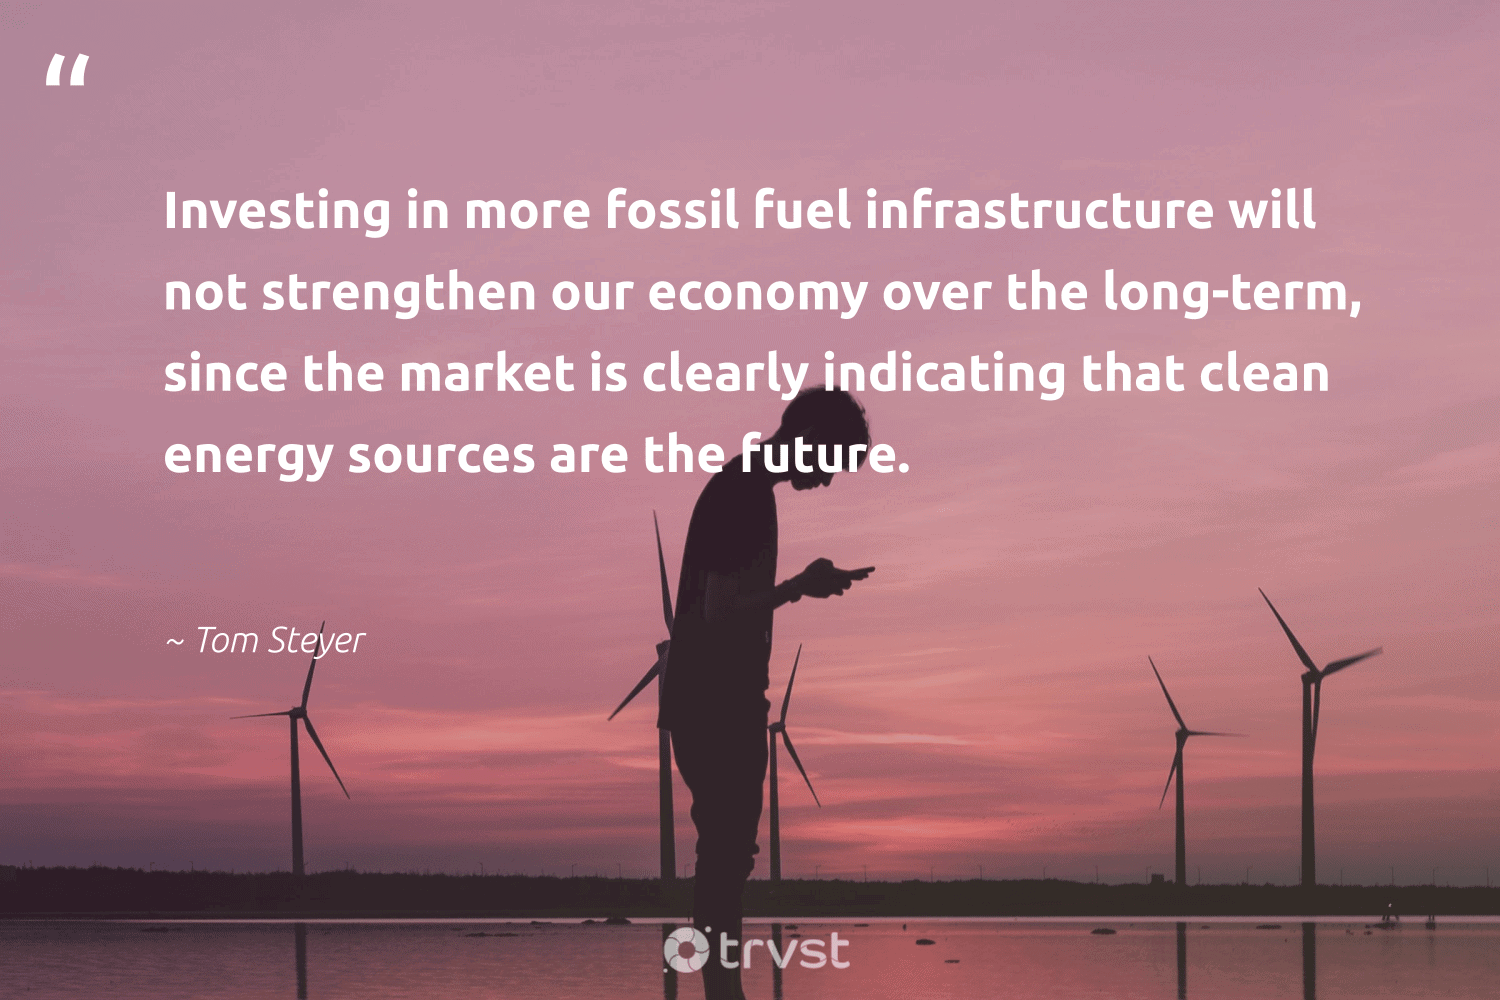 """""""Investing in more fossil fuel infrastructure will not strengthen our economy over the long-term, since the market is clearly indicating that clean energy sources are the future.""""  - Tom Steyer #trvst #quotes #renewableenergy #energy #cleanenergy #fossil #globalwarming #livegreen #socialchange #100percentclean #carbon #sustainability"""